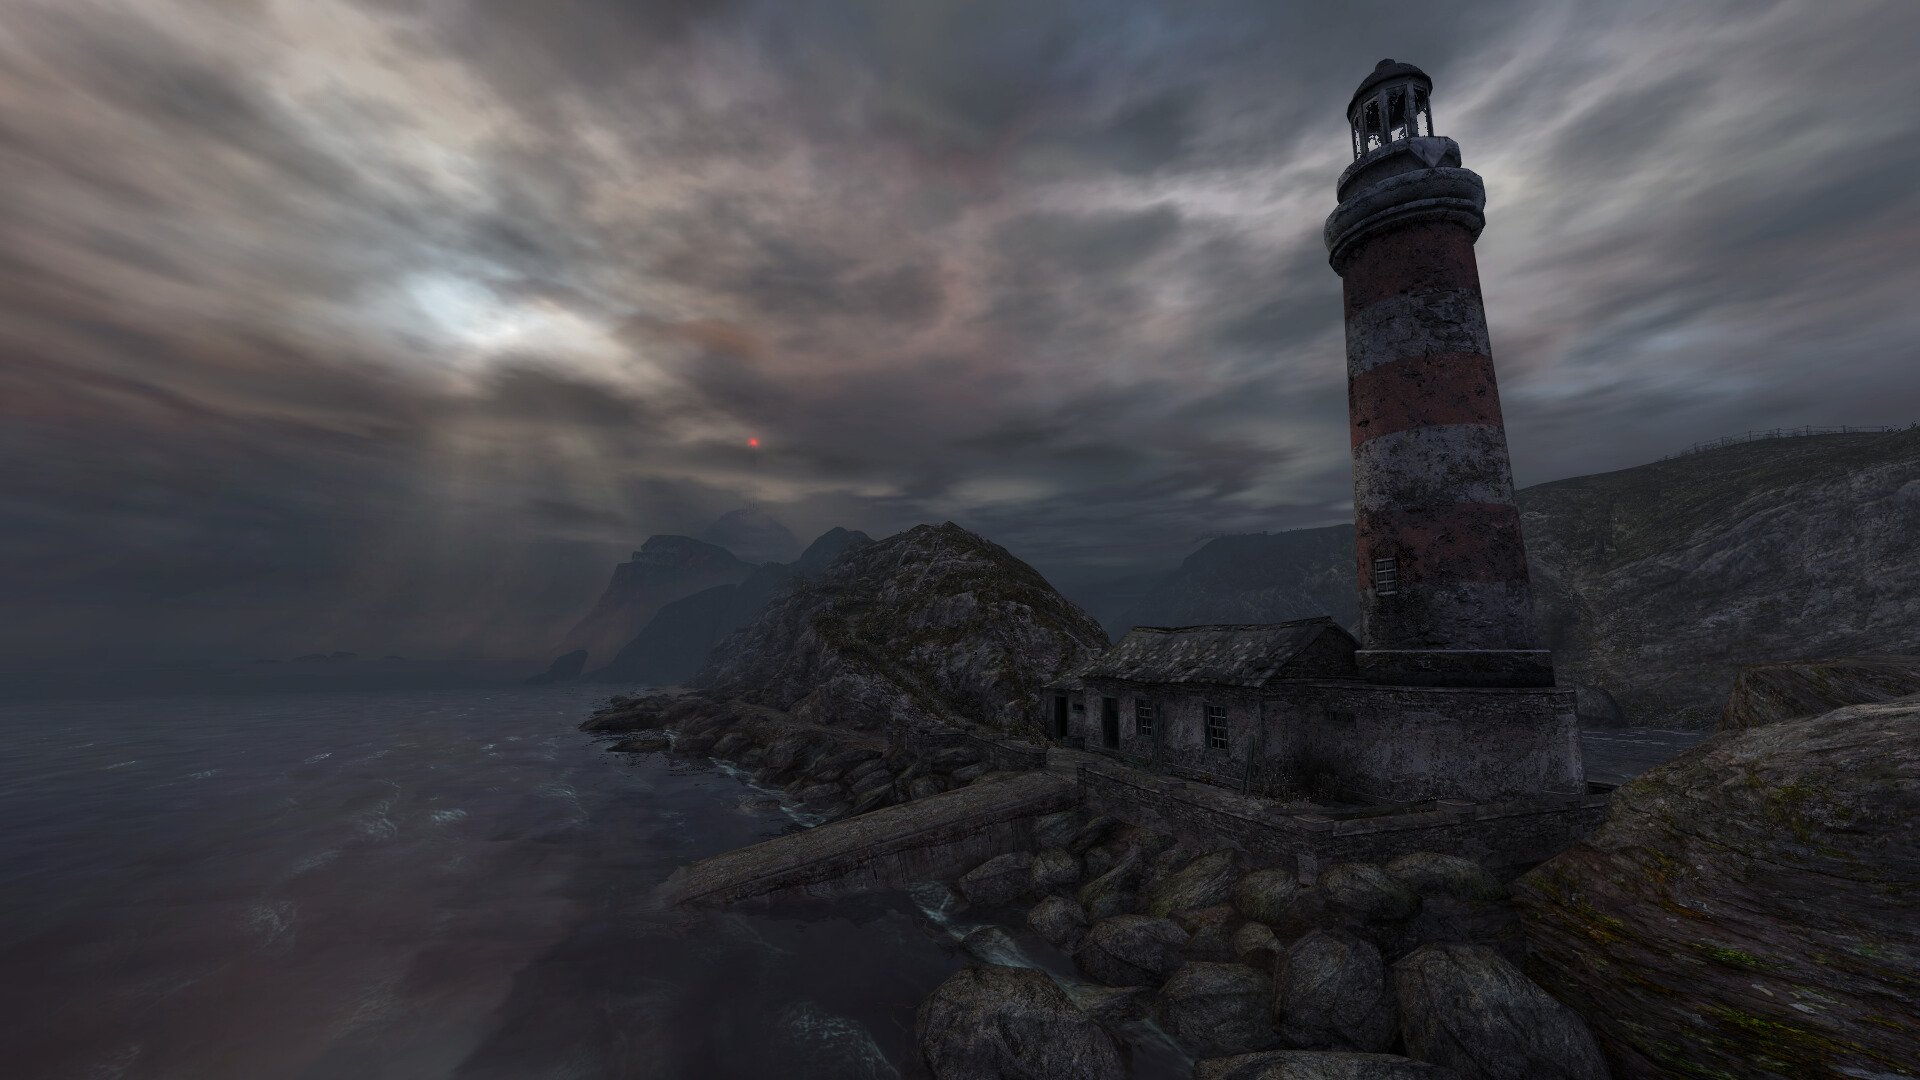 If you have the patience for walking sims like Dear Esther and The Vanishing of Ethan Carter, you'll likely be able to endure the slower pace of Death Stranding.